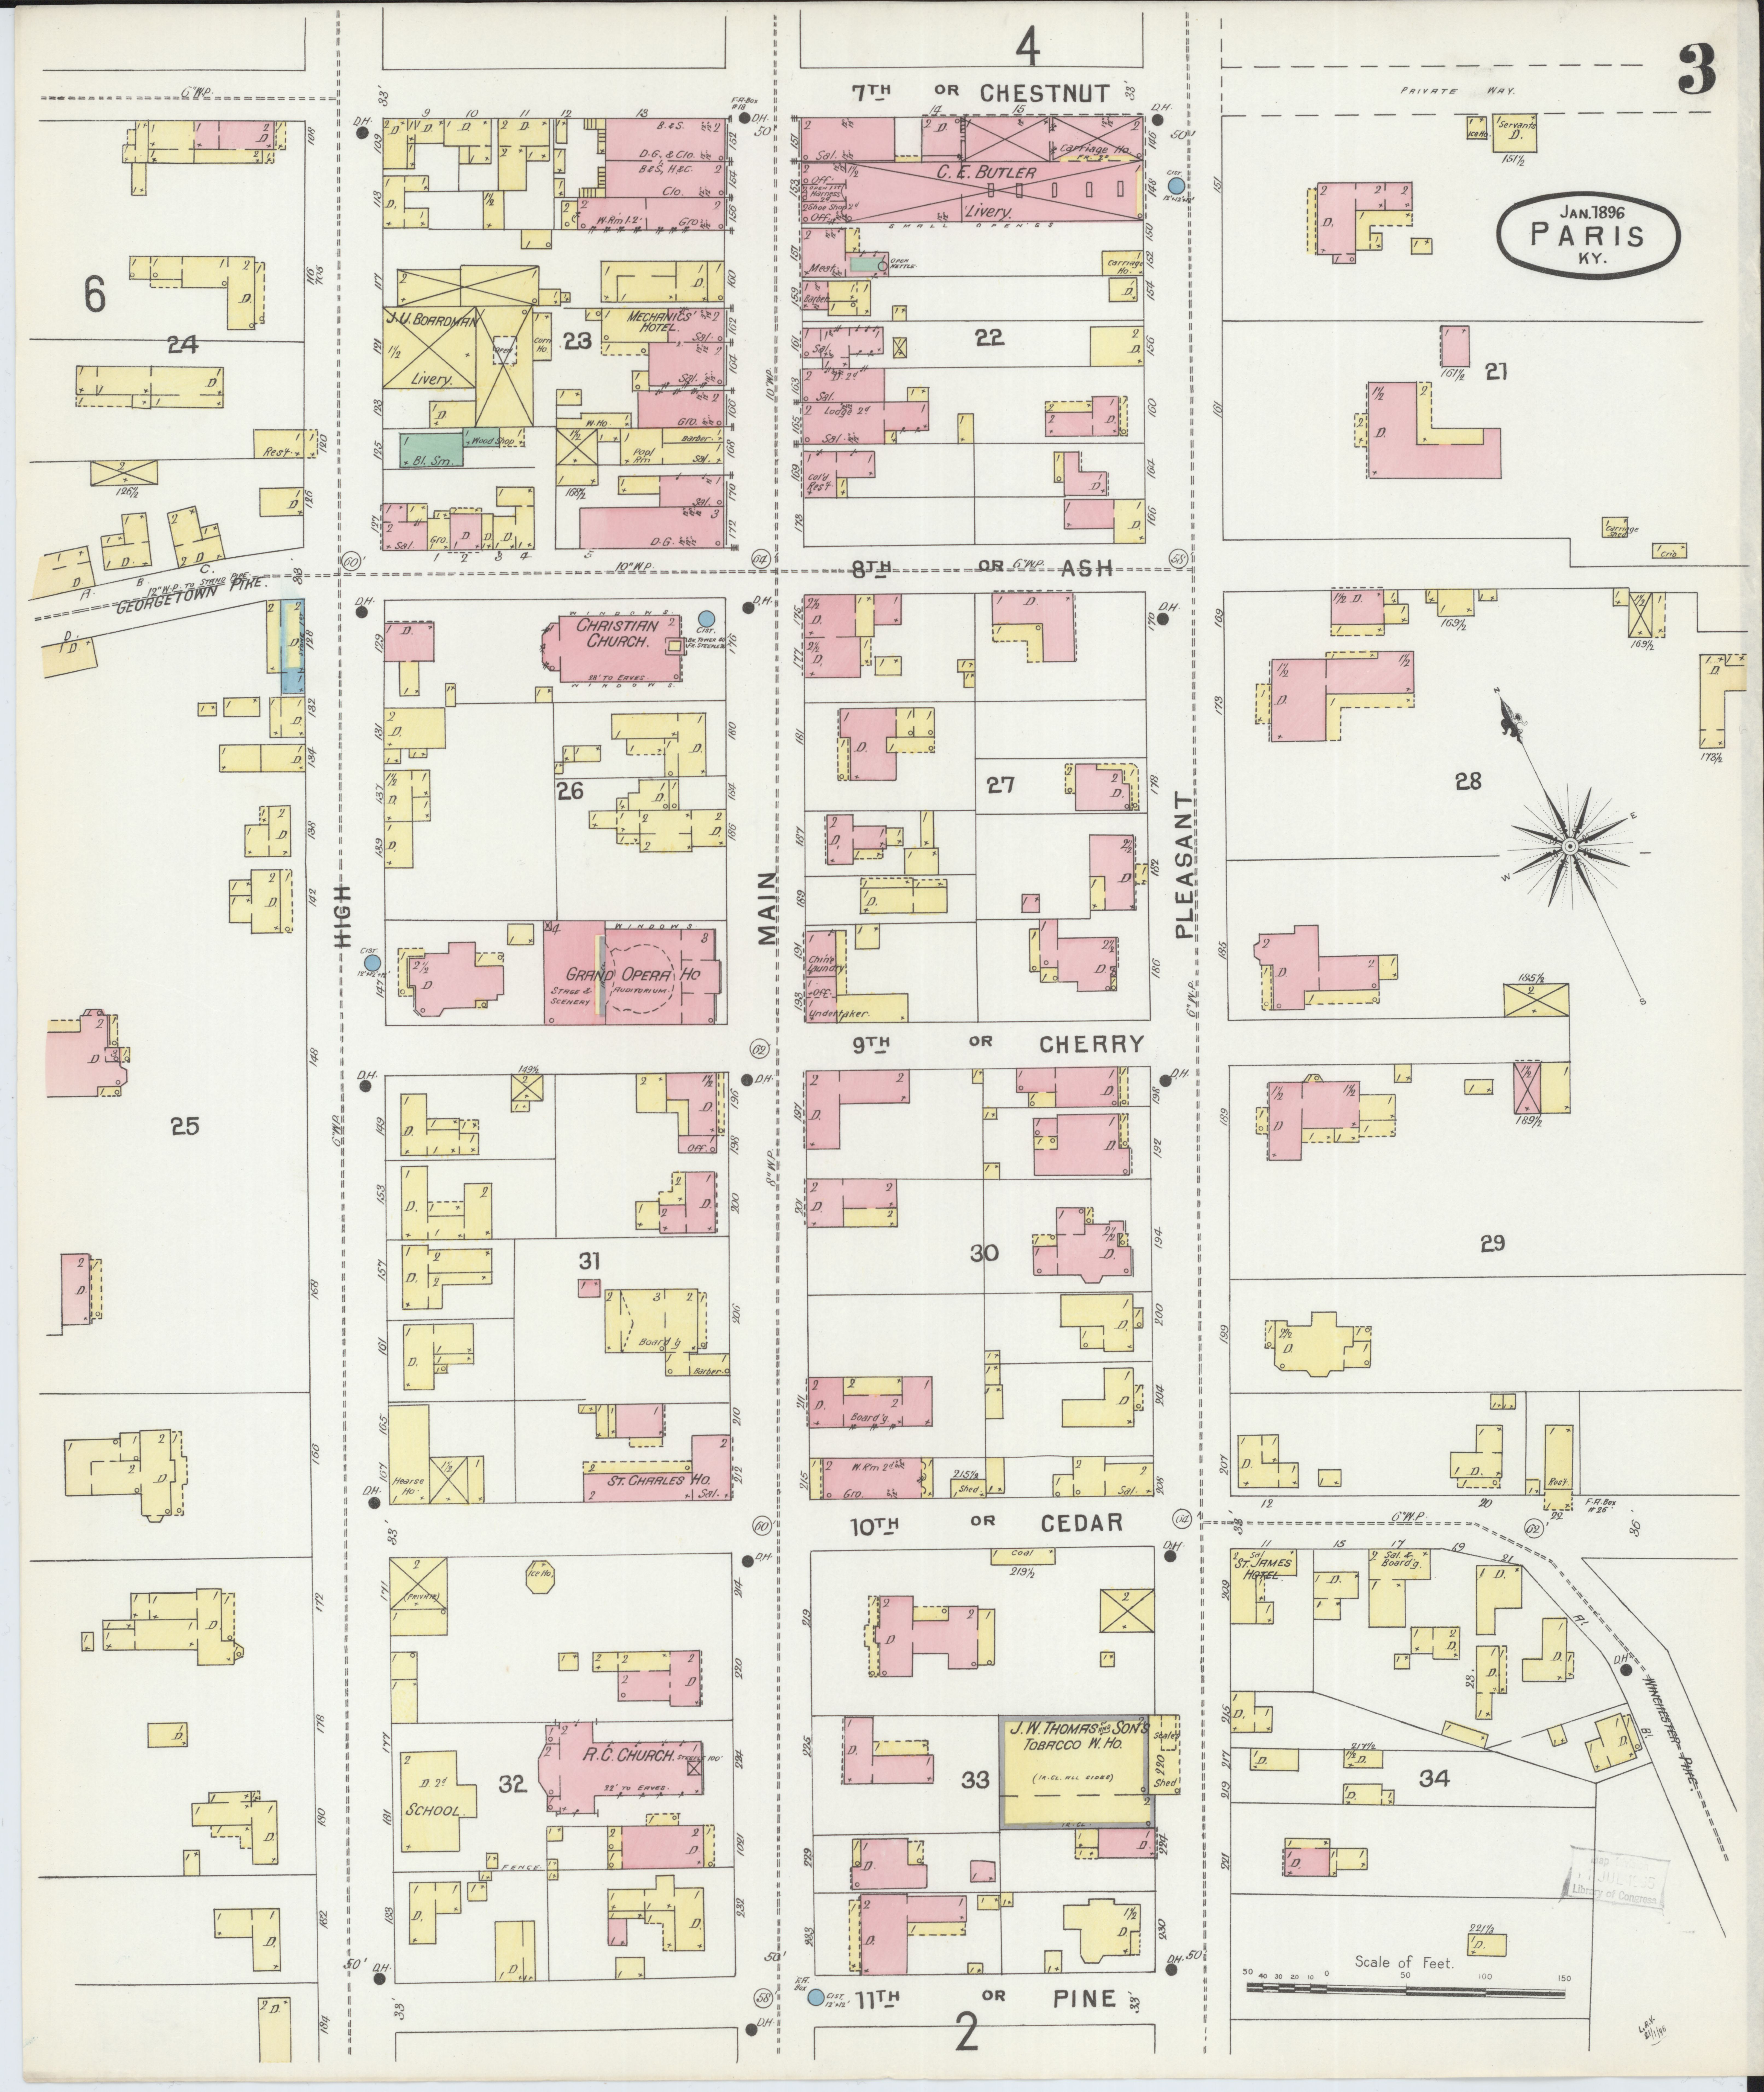 Picture of: File Sanborn Fire Insurance Map From Paris Bourbon County Kentucky Loc Sanborn03227 003 3 Jpg Wikimedia Commons